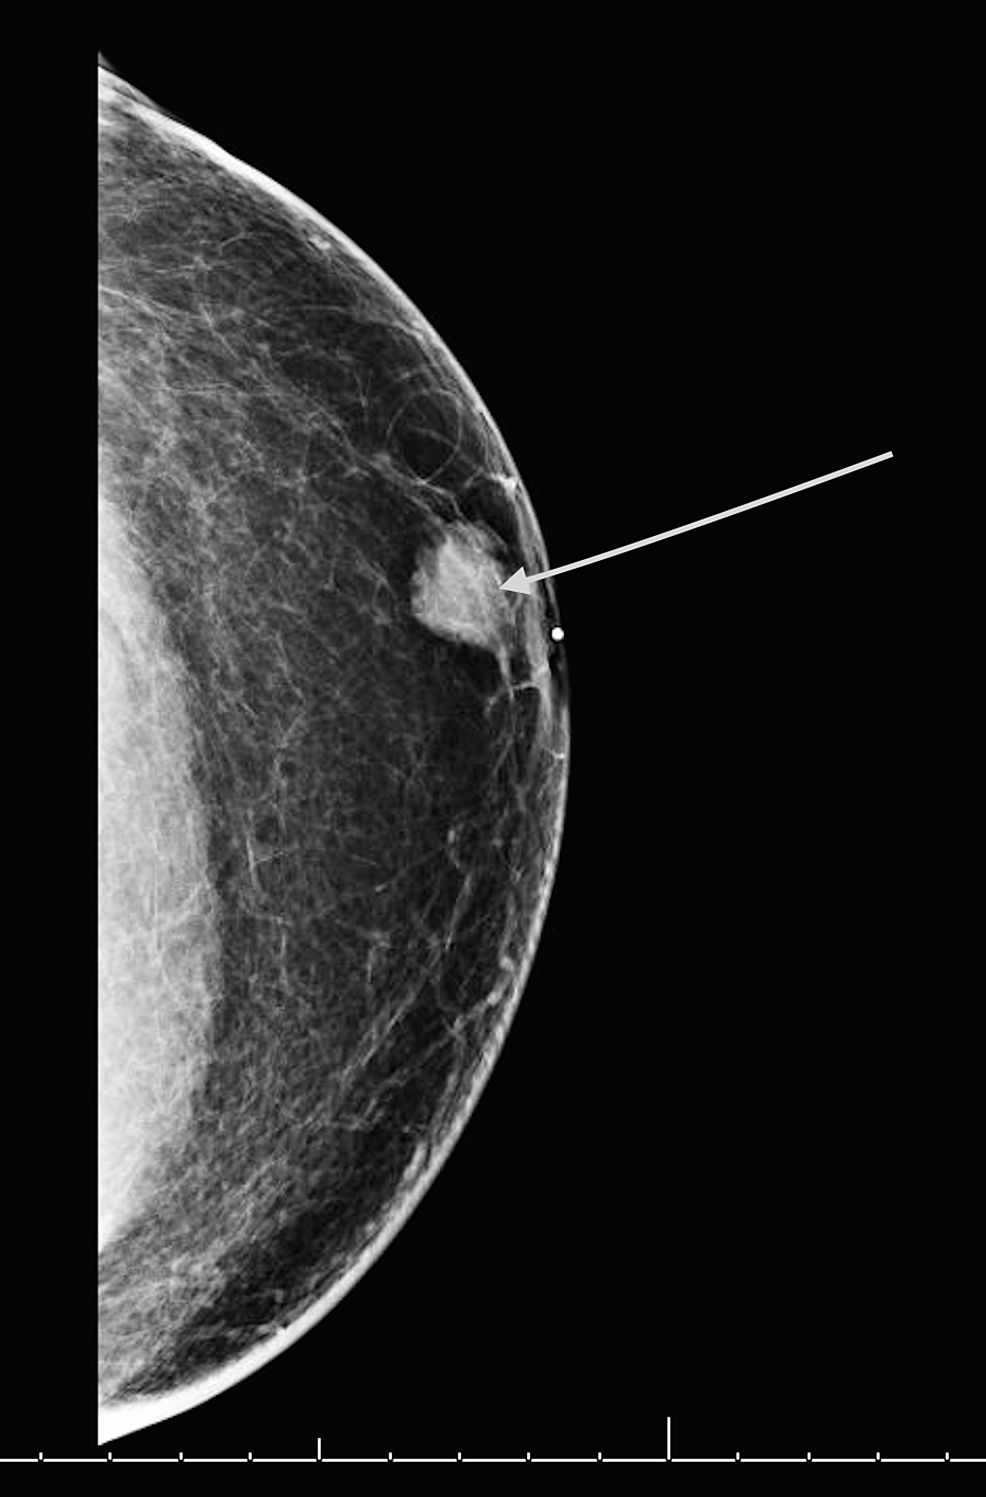 Diagnostic-mammogram-showing-the-left-breast-mass.